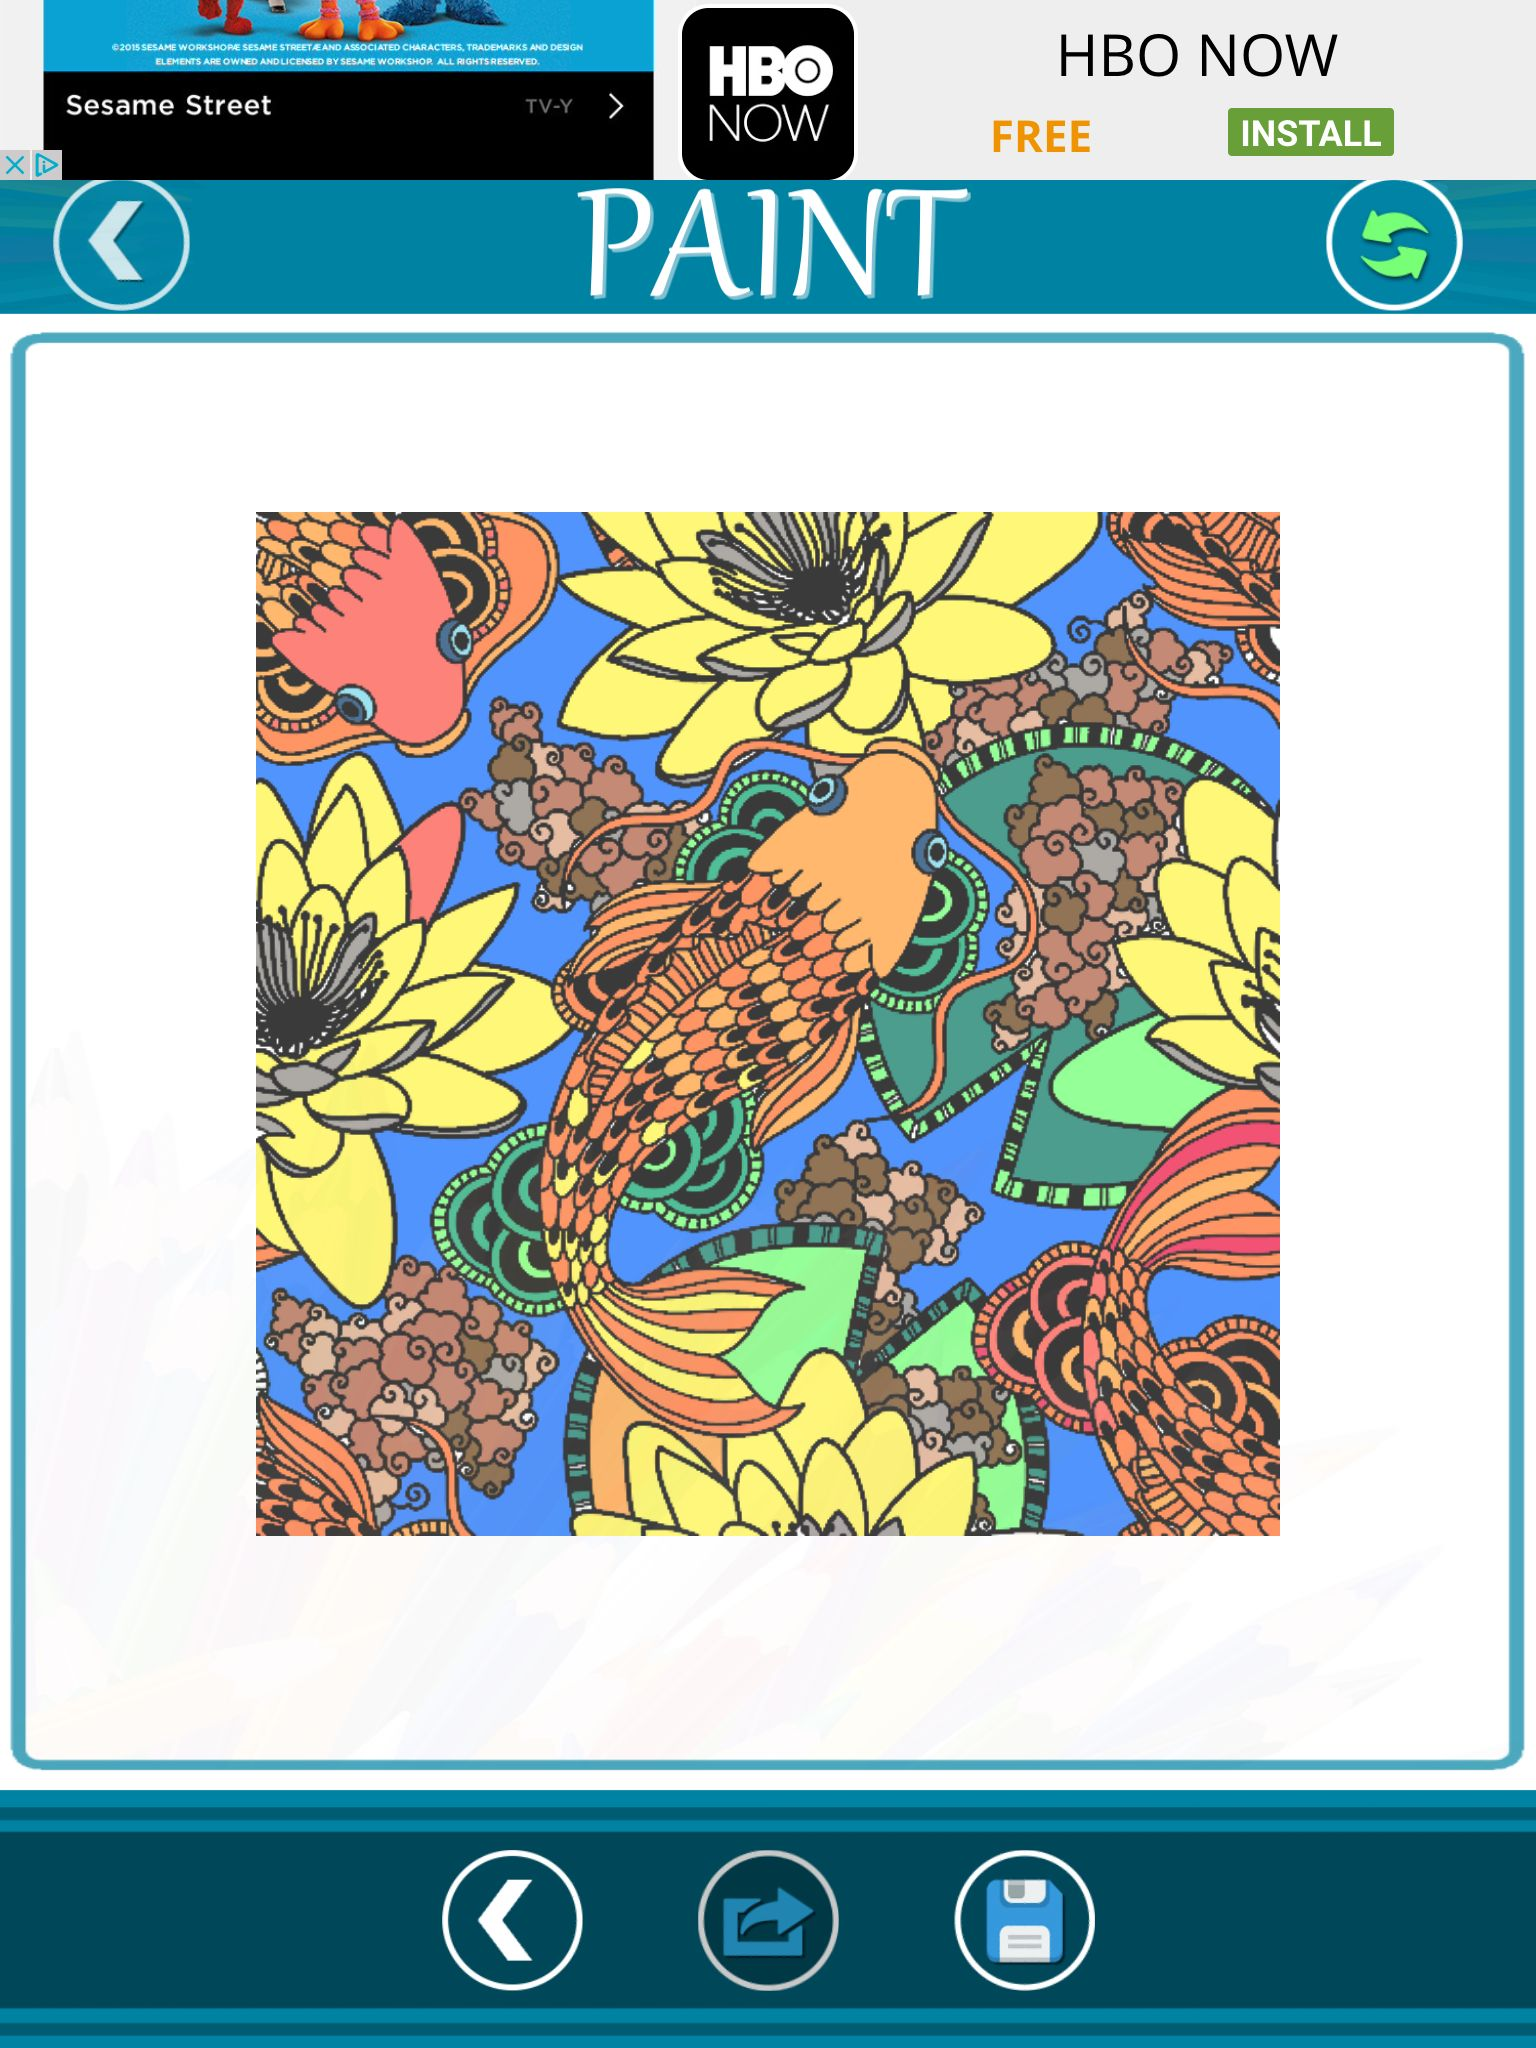 Loving Coloring App For Adults You Could Make Your Own Arts Using It Coloring Apps Coloring Books Adult Coloring